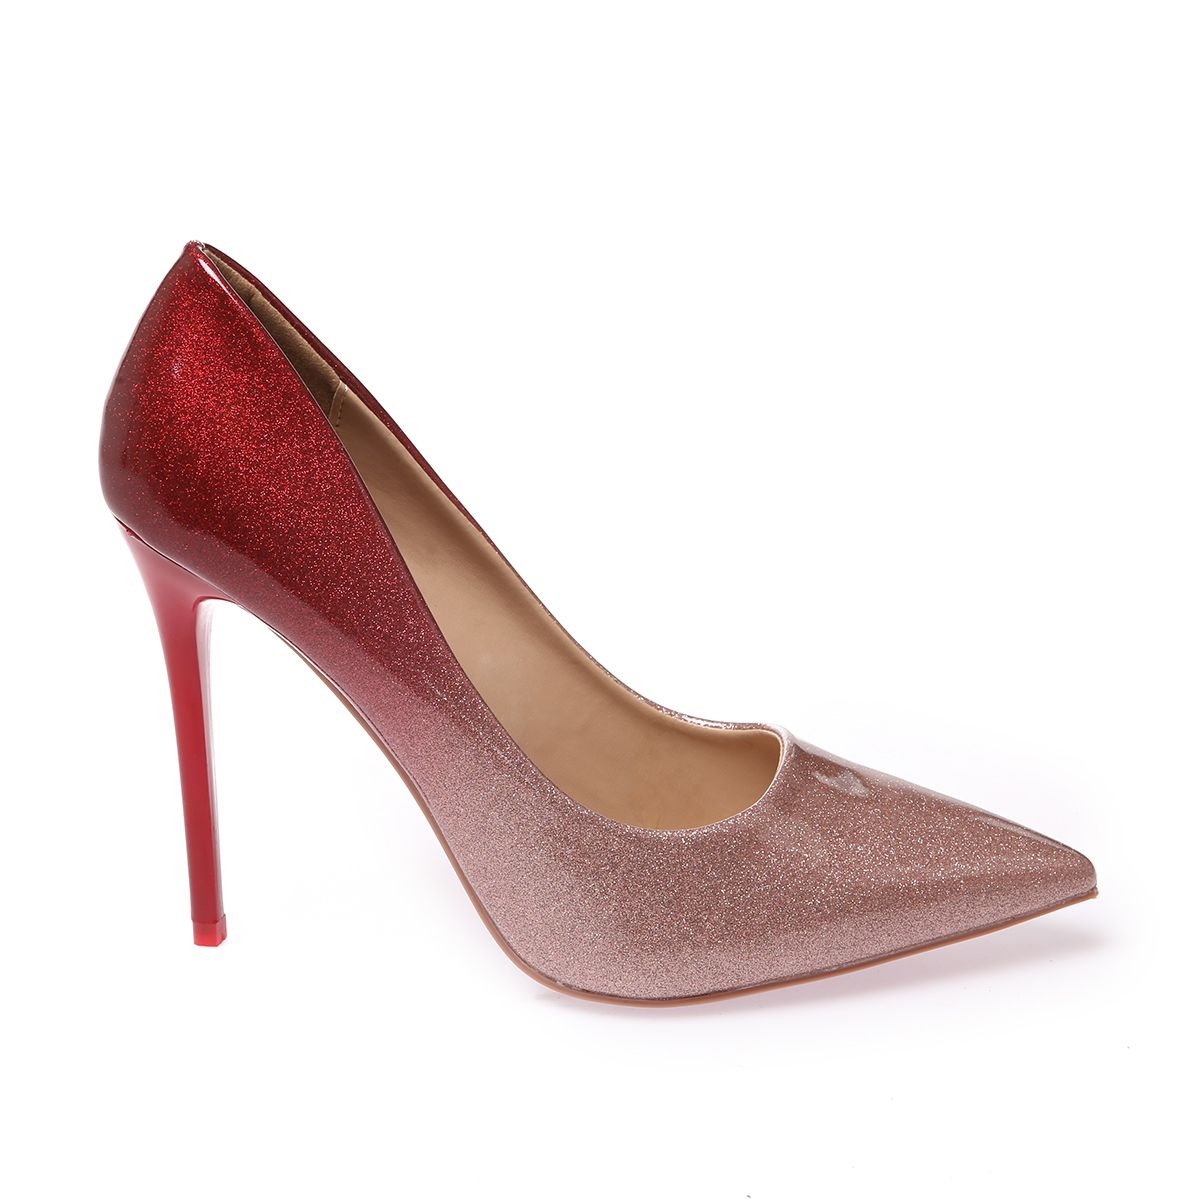 Escarpins stiletto dégradé pailleté rose et rouge